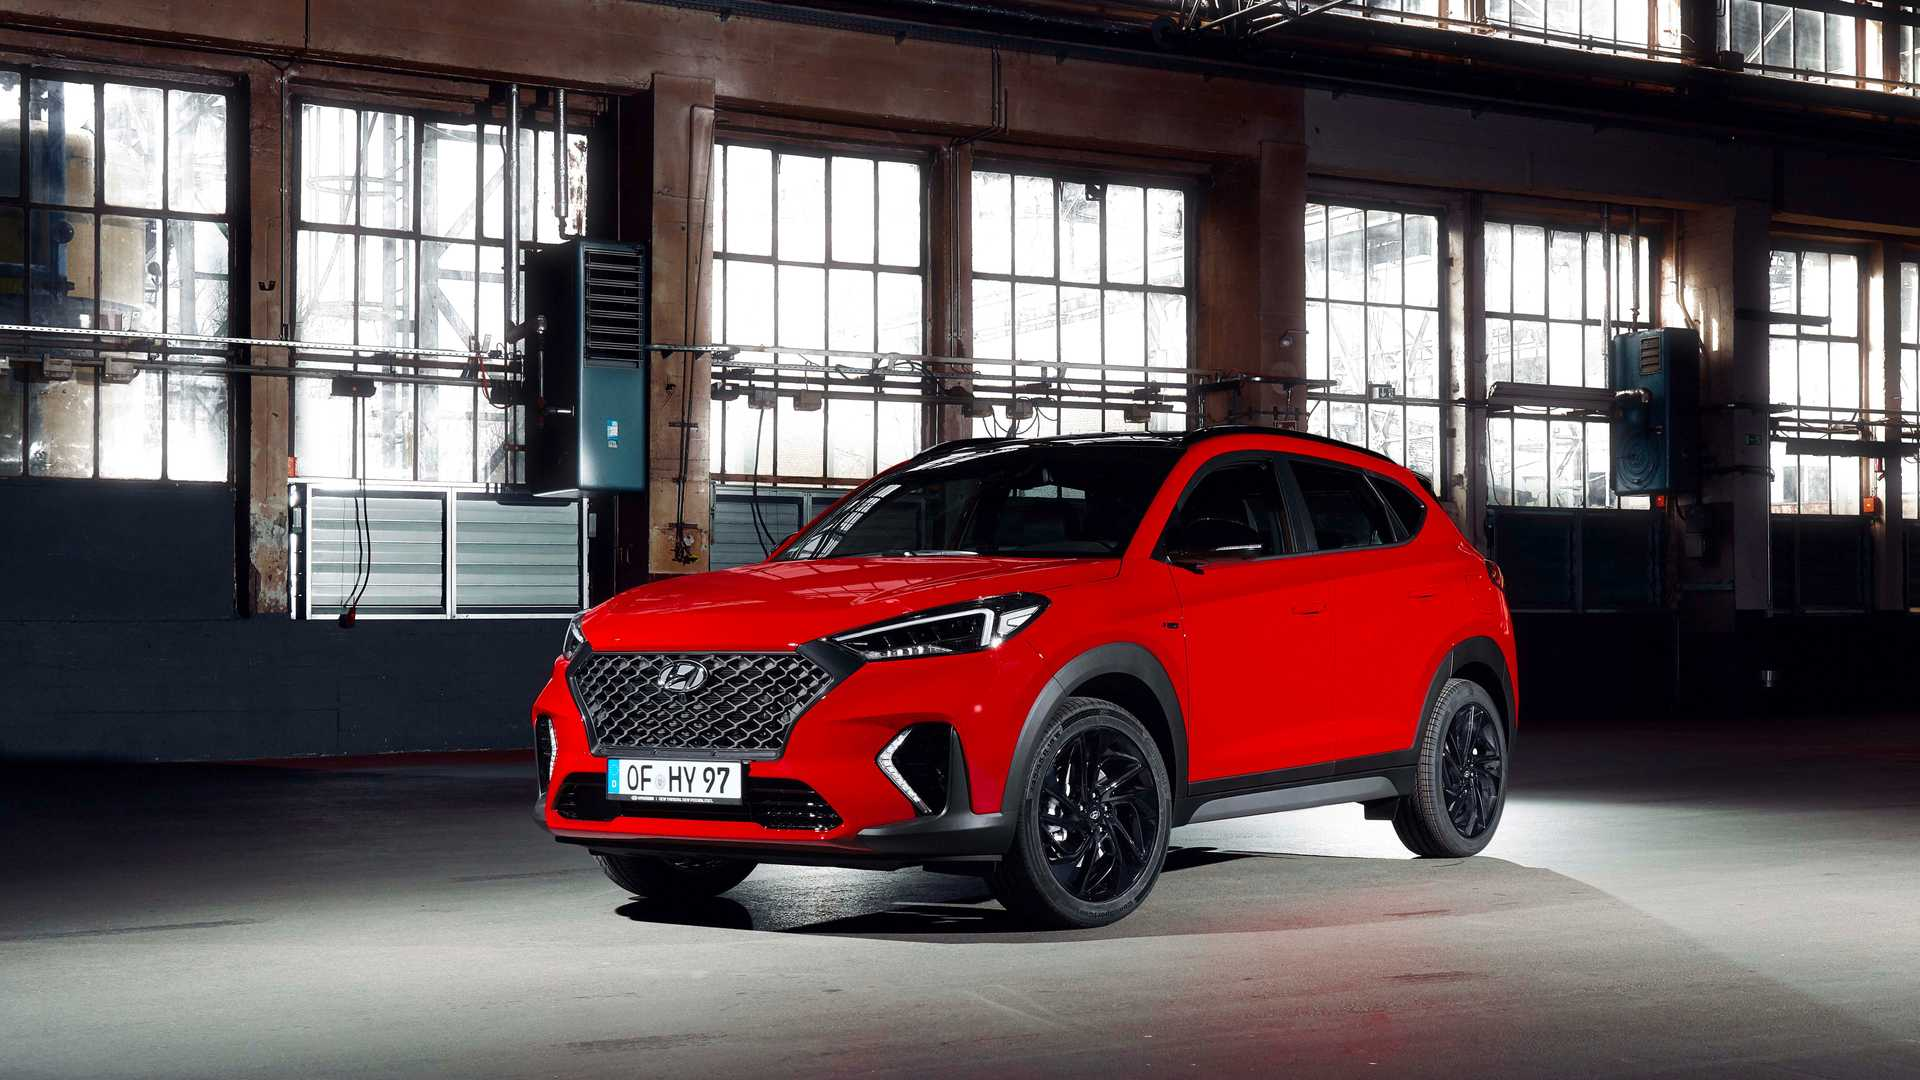 South Korean car manufacturer Hyundai has revealed the N Line performance version of its Tucson crossover/SUV